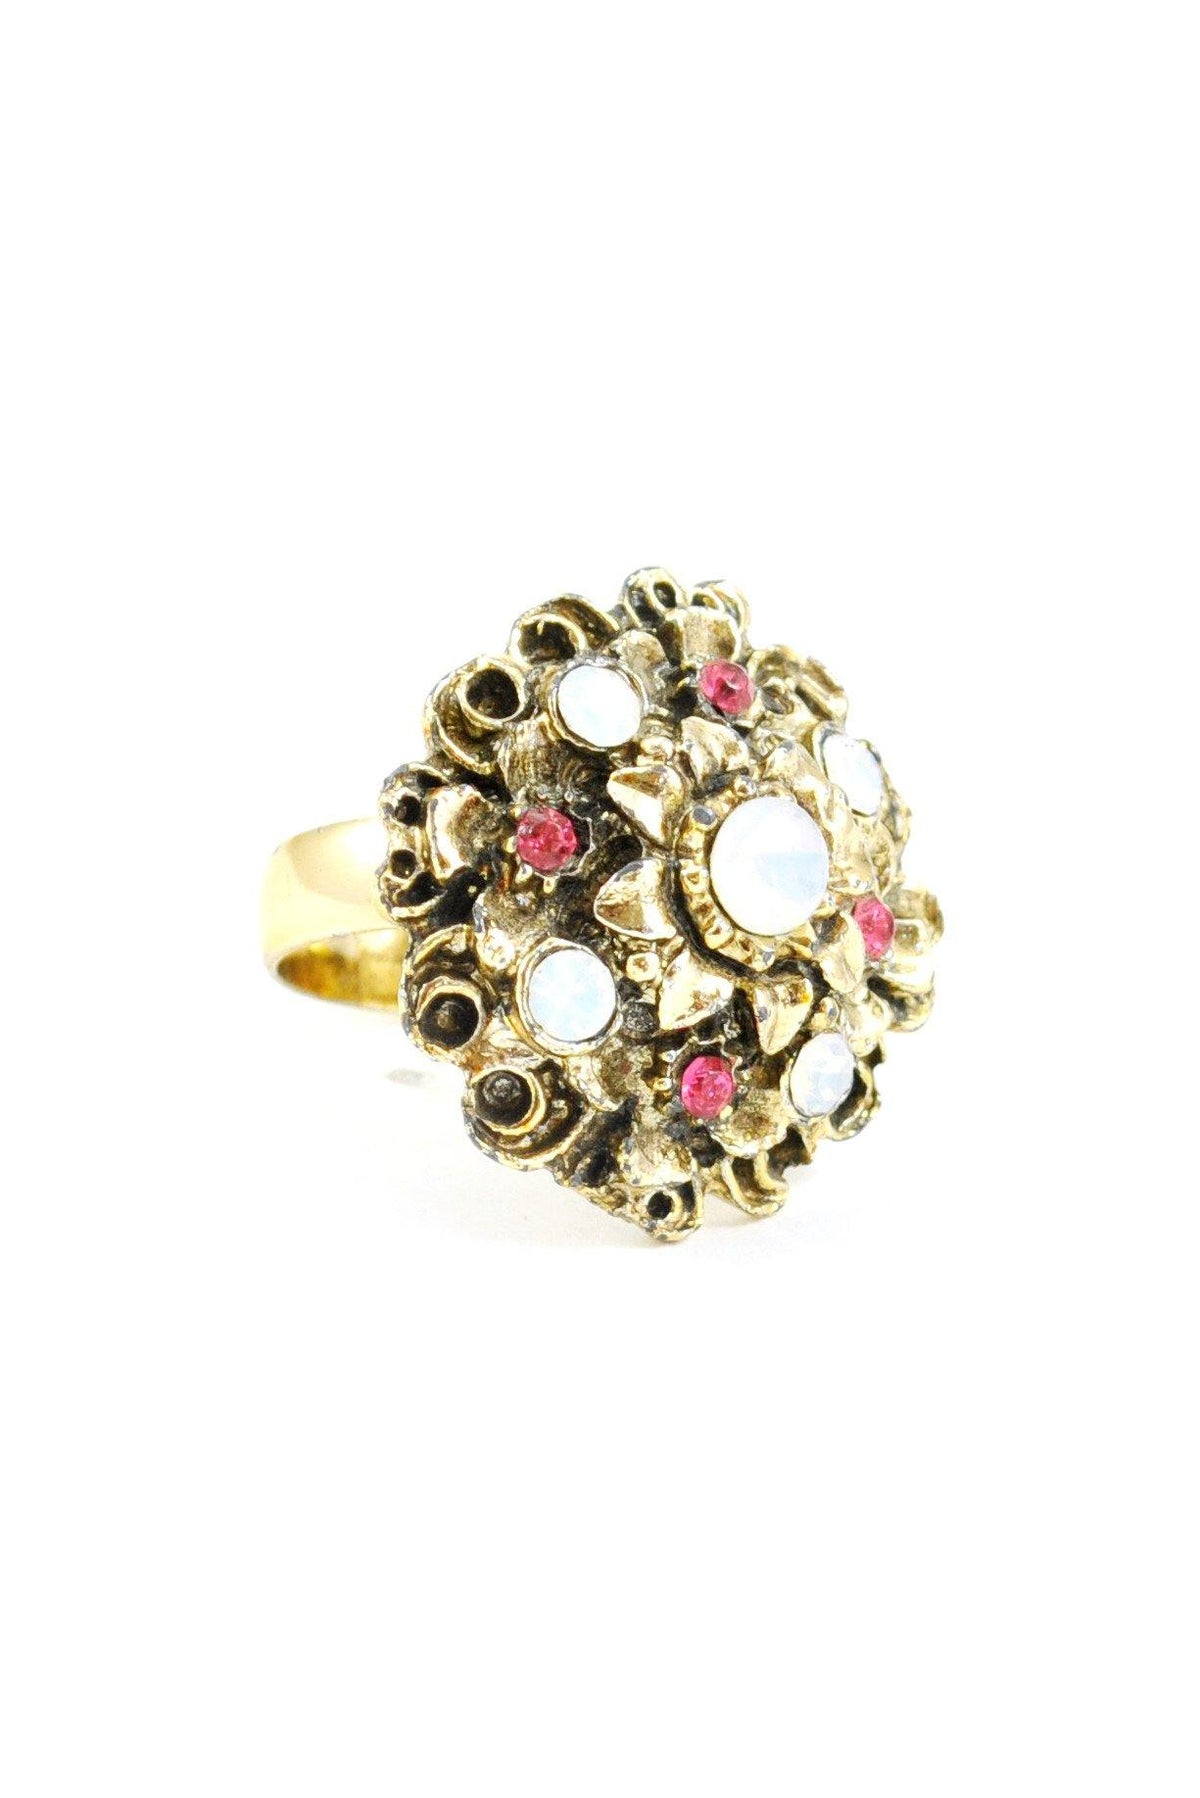 60's__Vintage__Rhinestone and Opal Statement Ring - Sweet & Spark